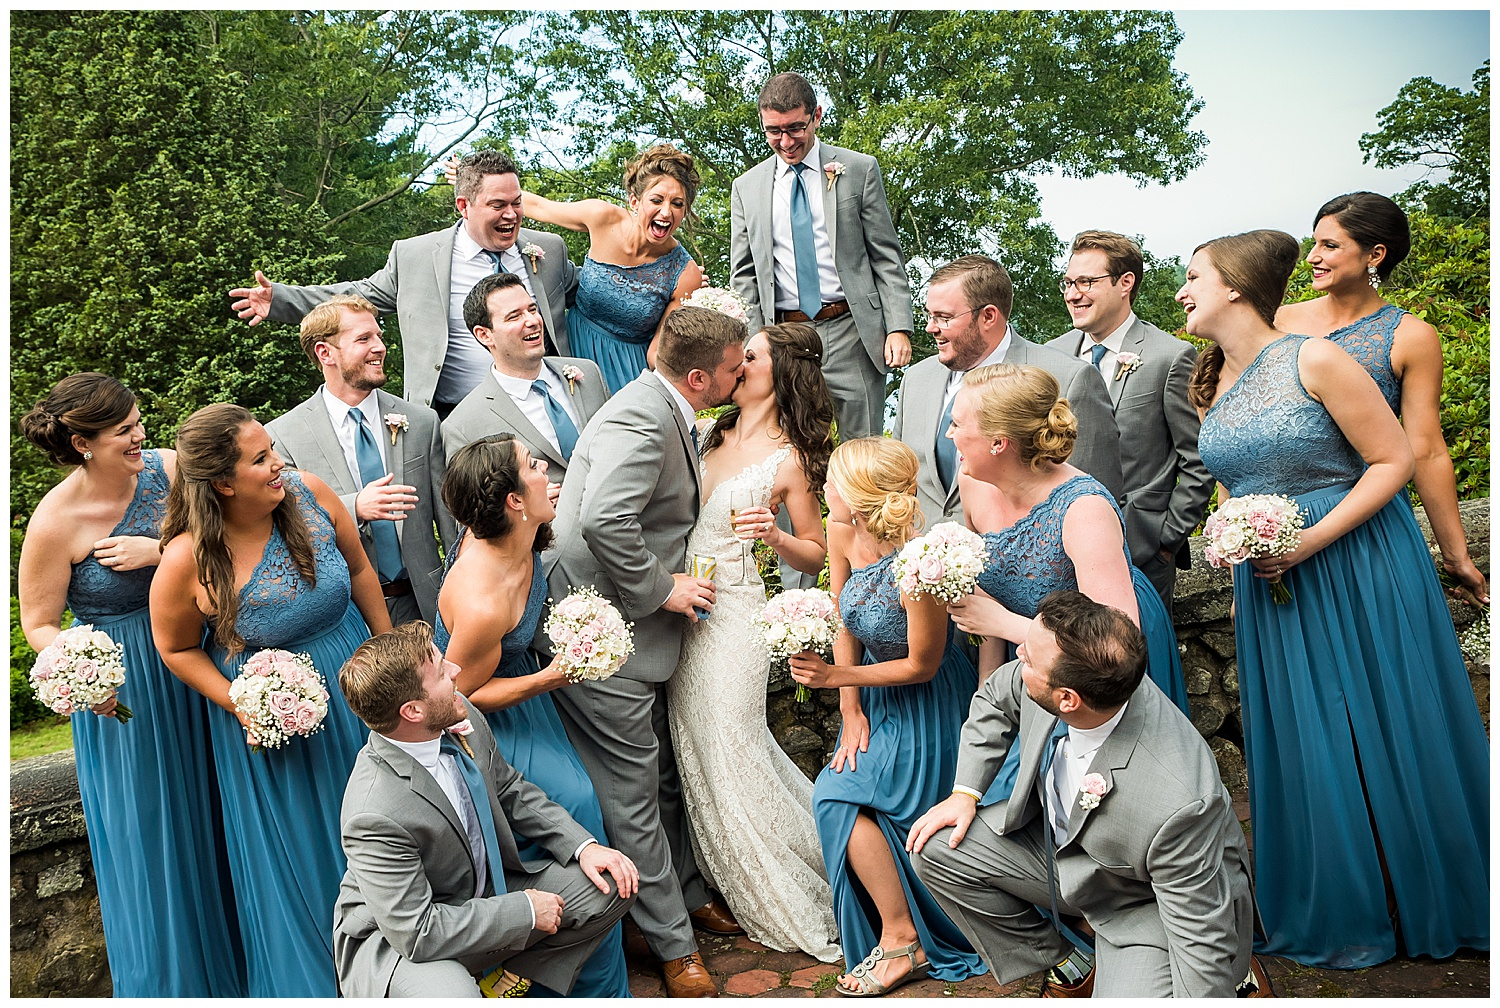 Moraine Farms Fun Wedding Party Photos